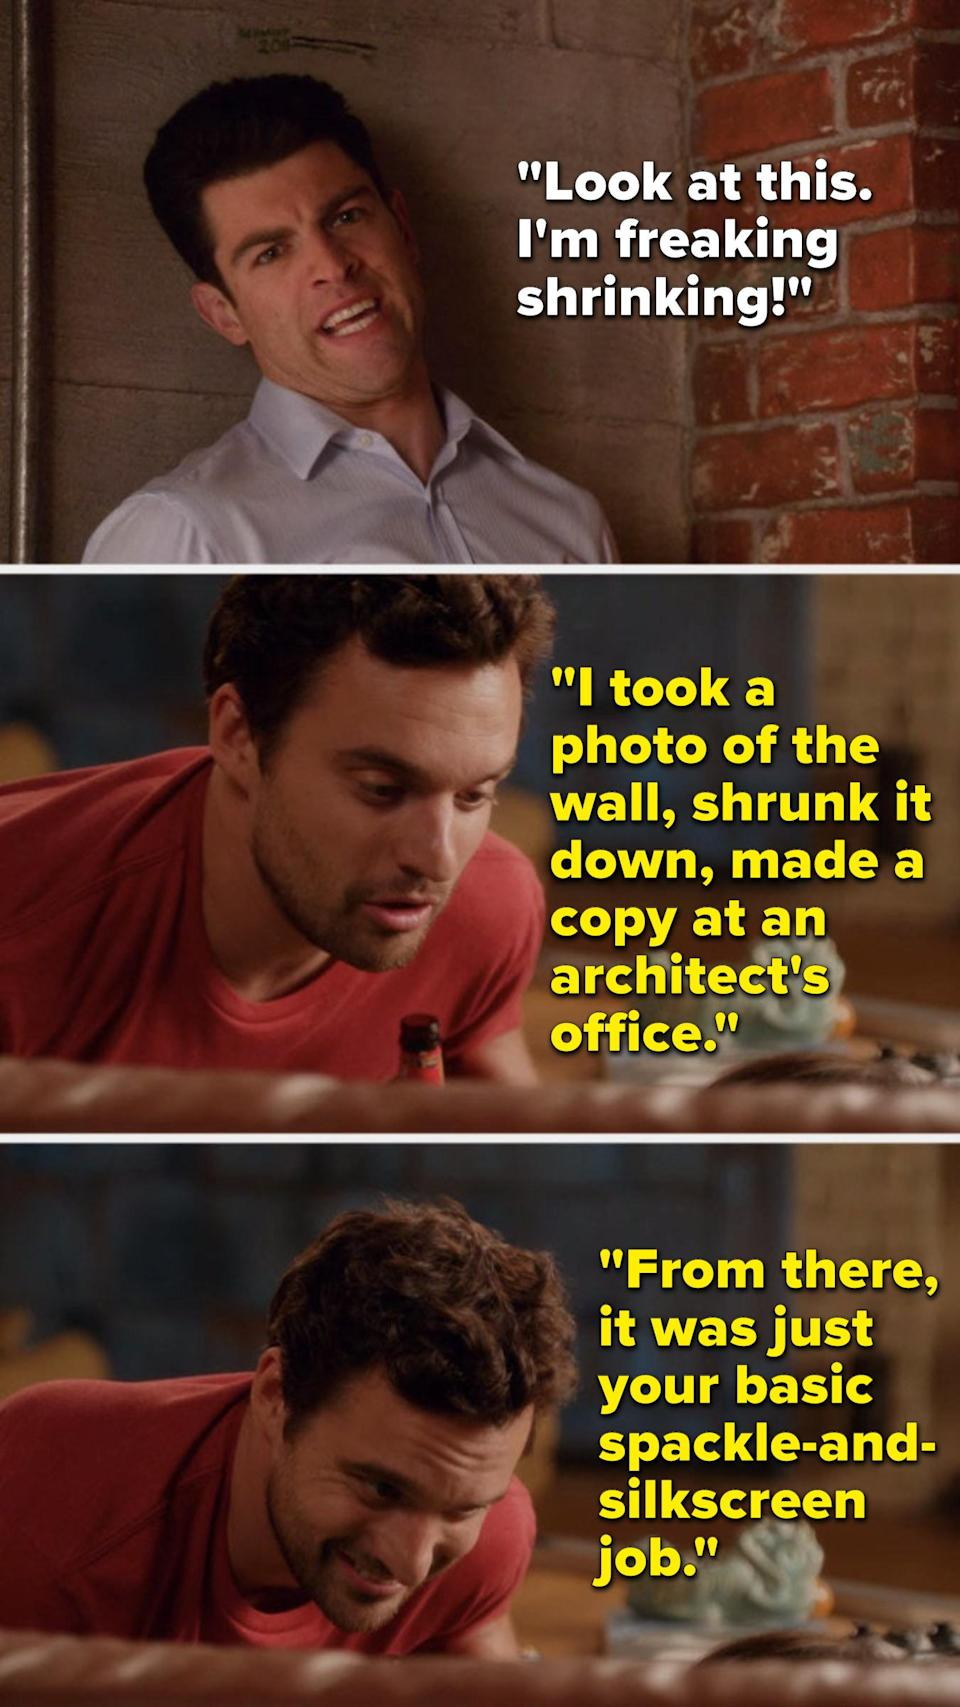 Schmidt stands below his height marks on the wall and says, Look at this, I'm freaking shrinking, Nick whispers, I took a photo of the wall, shrunk it down, made a copy at an architect's office, from there it was a basic spackle-and-silkscreen job